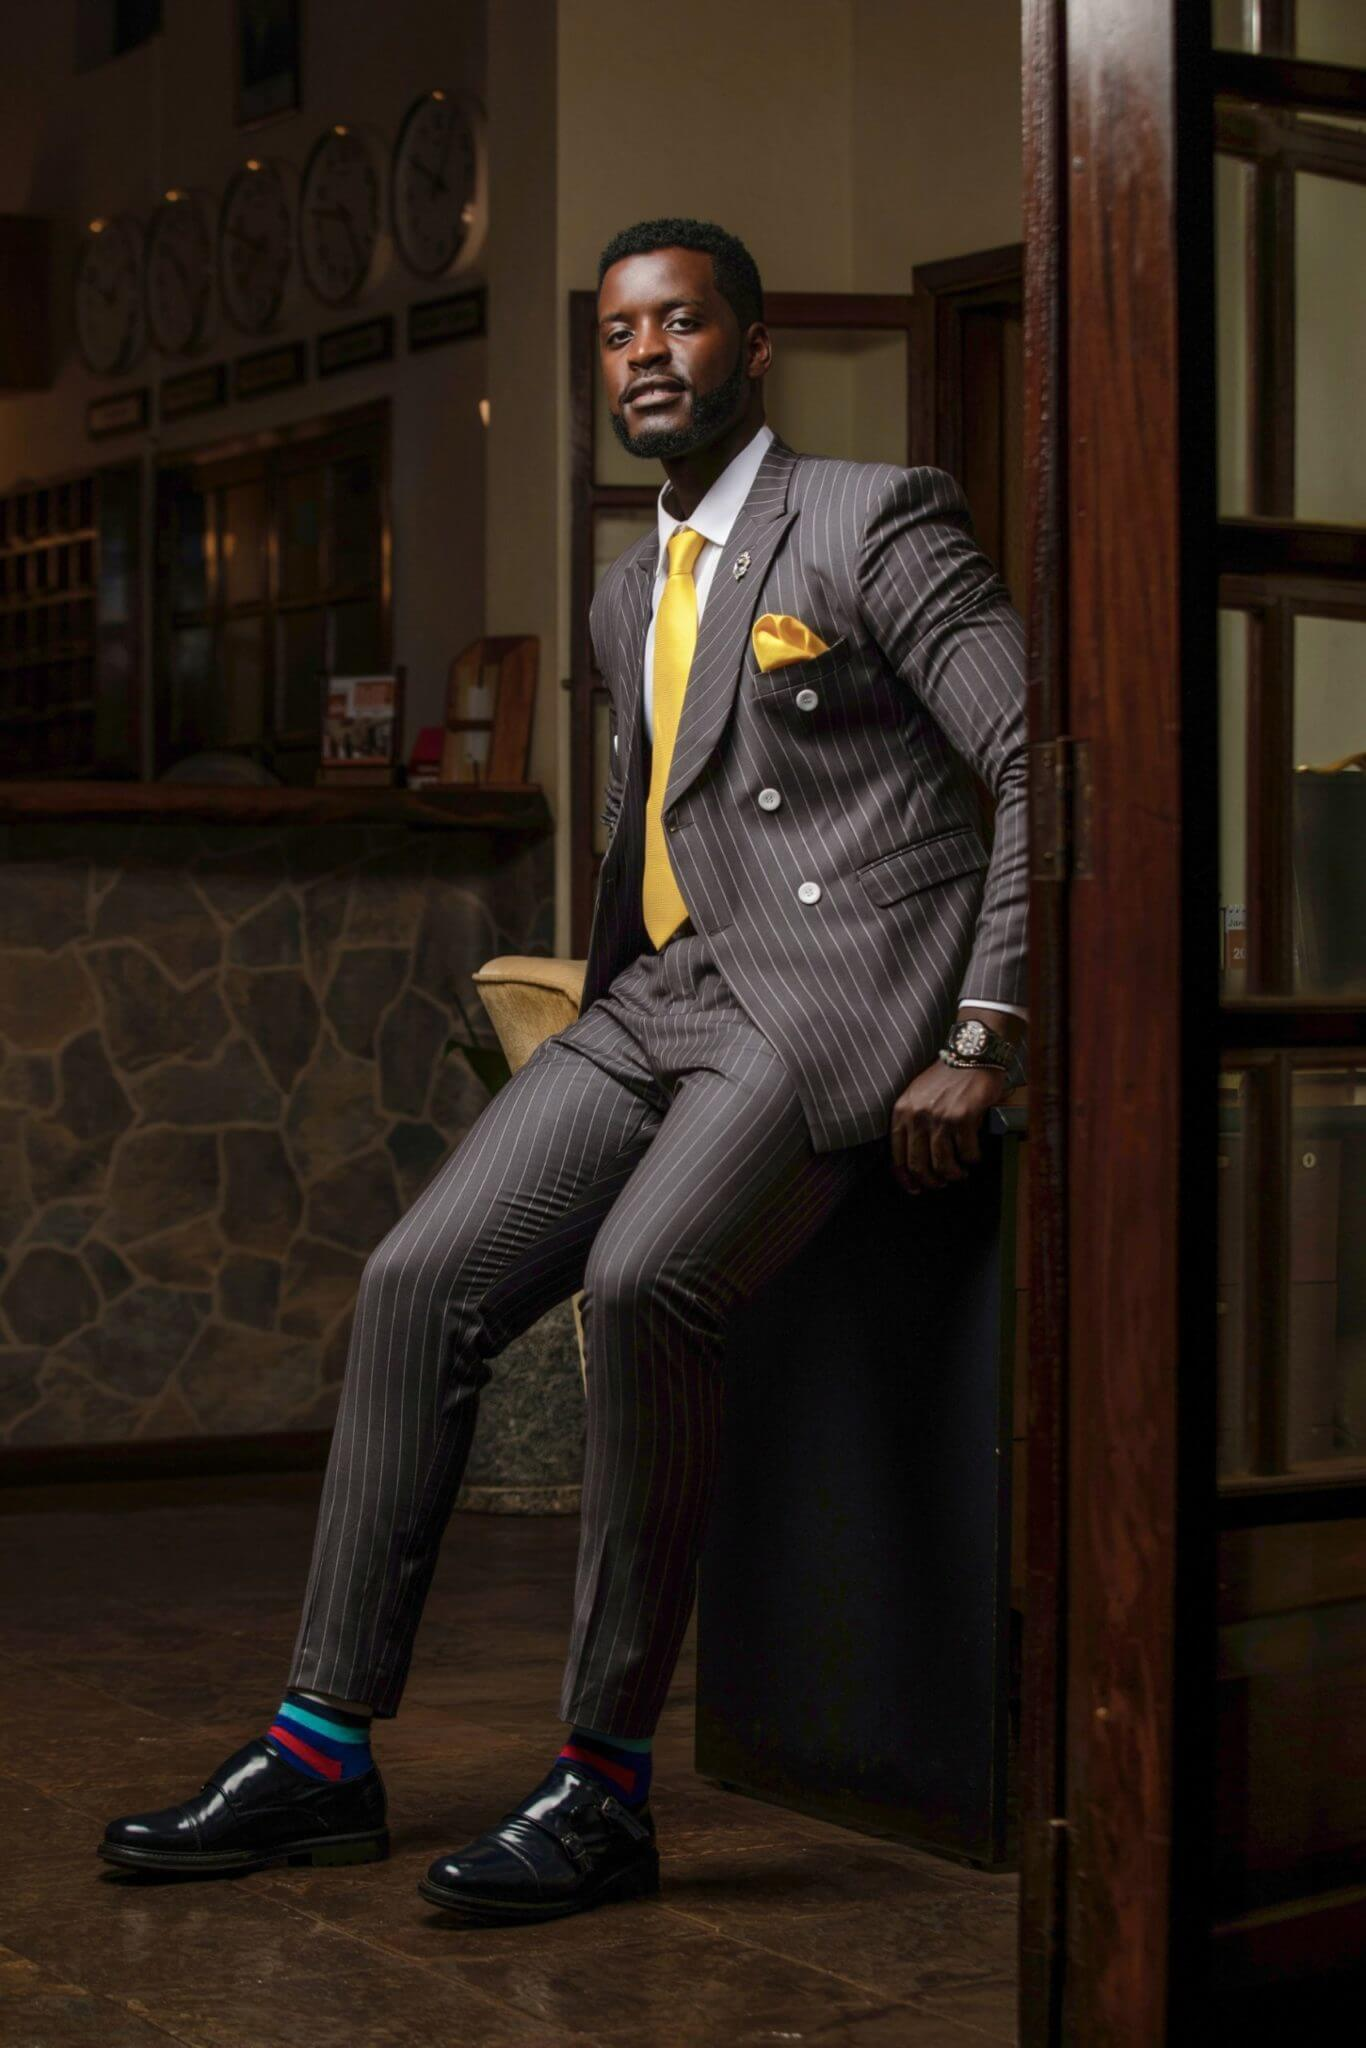 19Larry Casual Kampala Menswear scaled 1 scaled